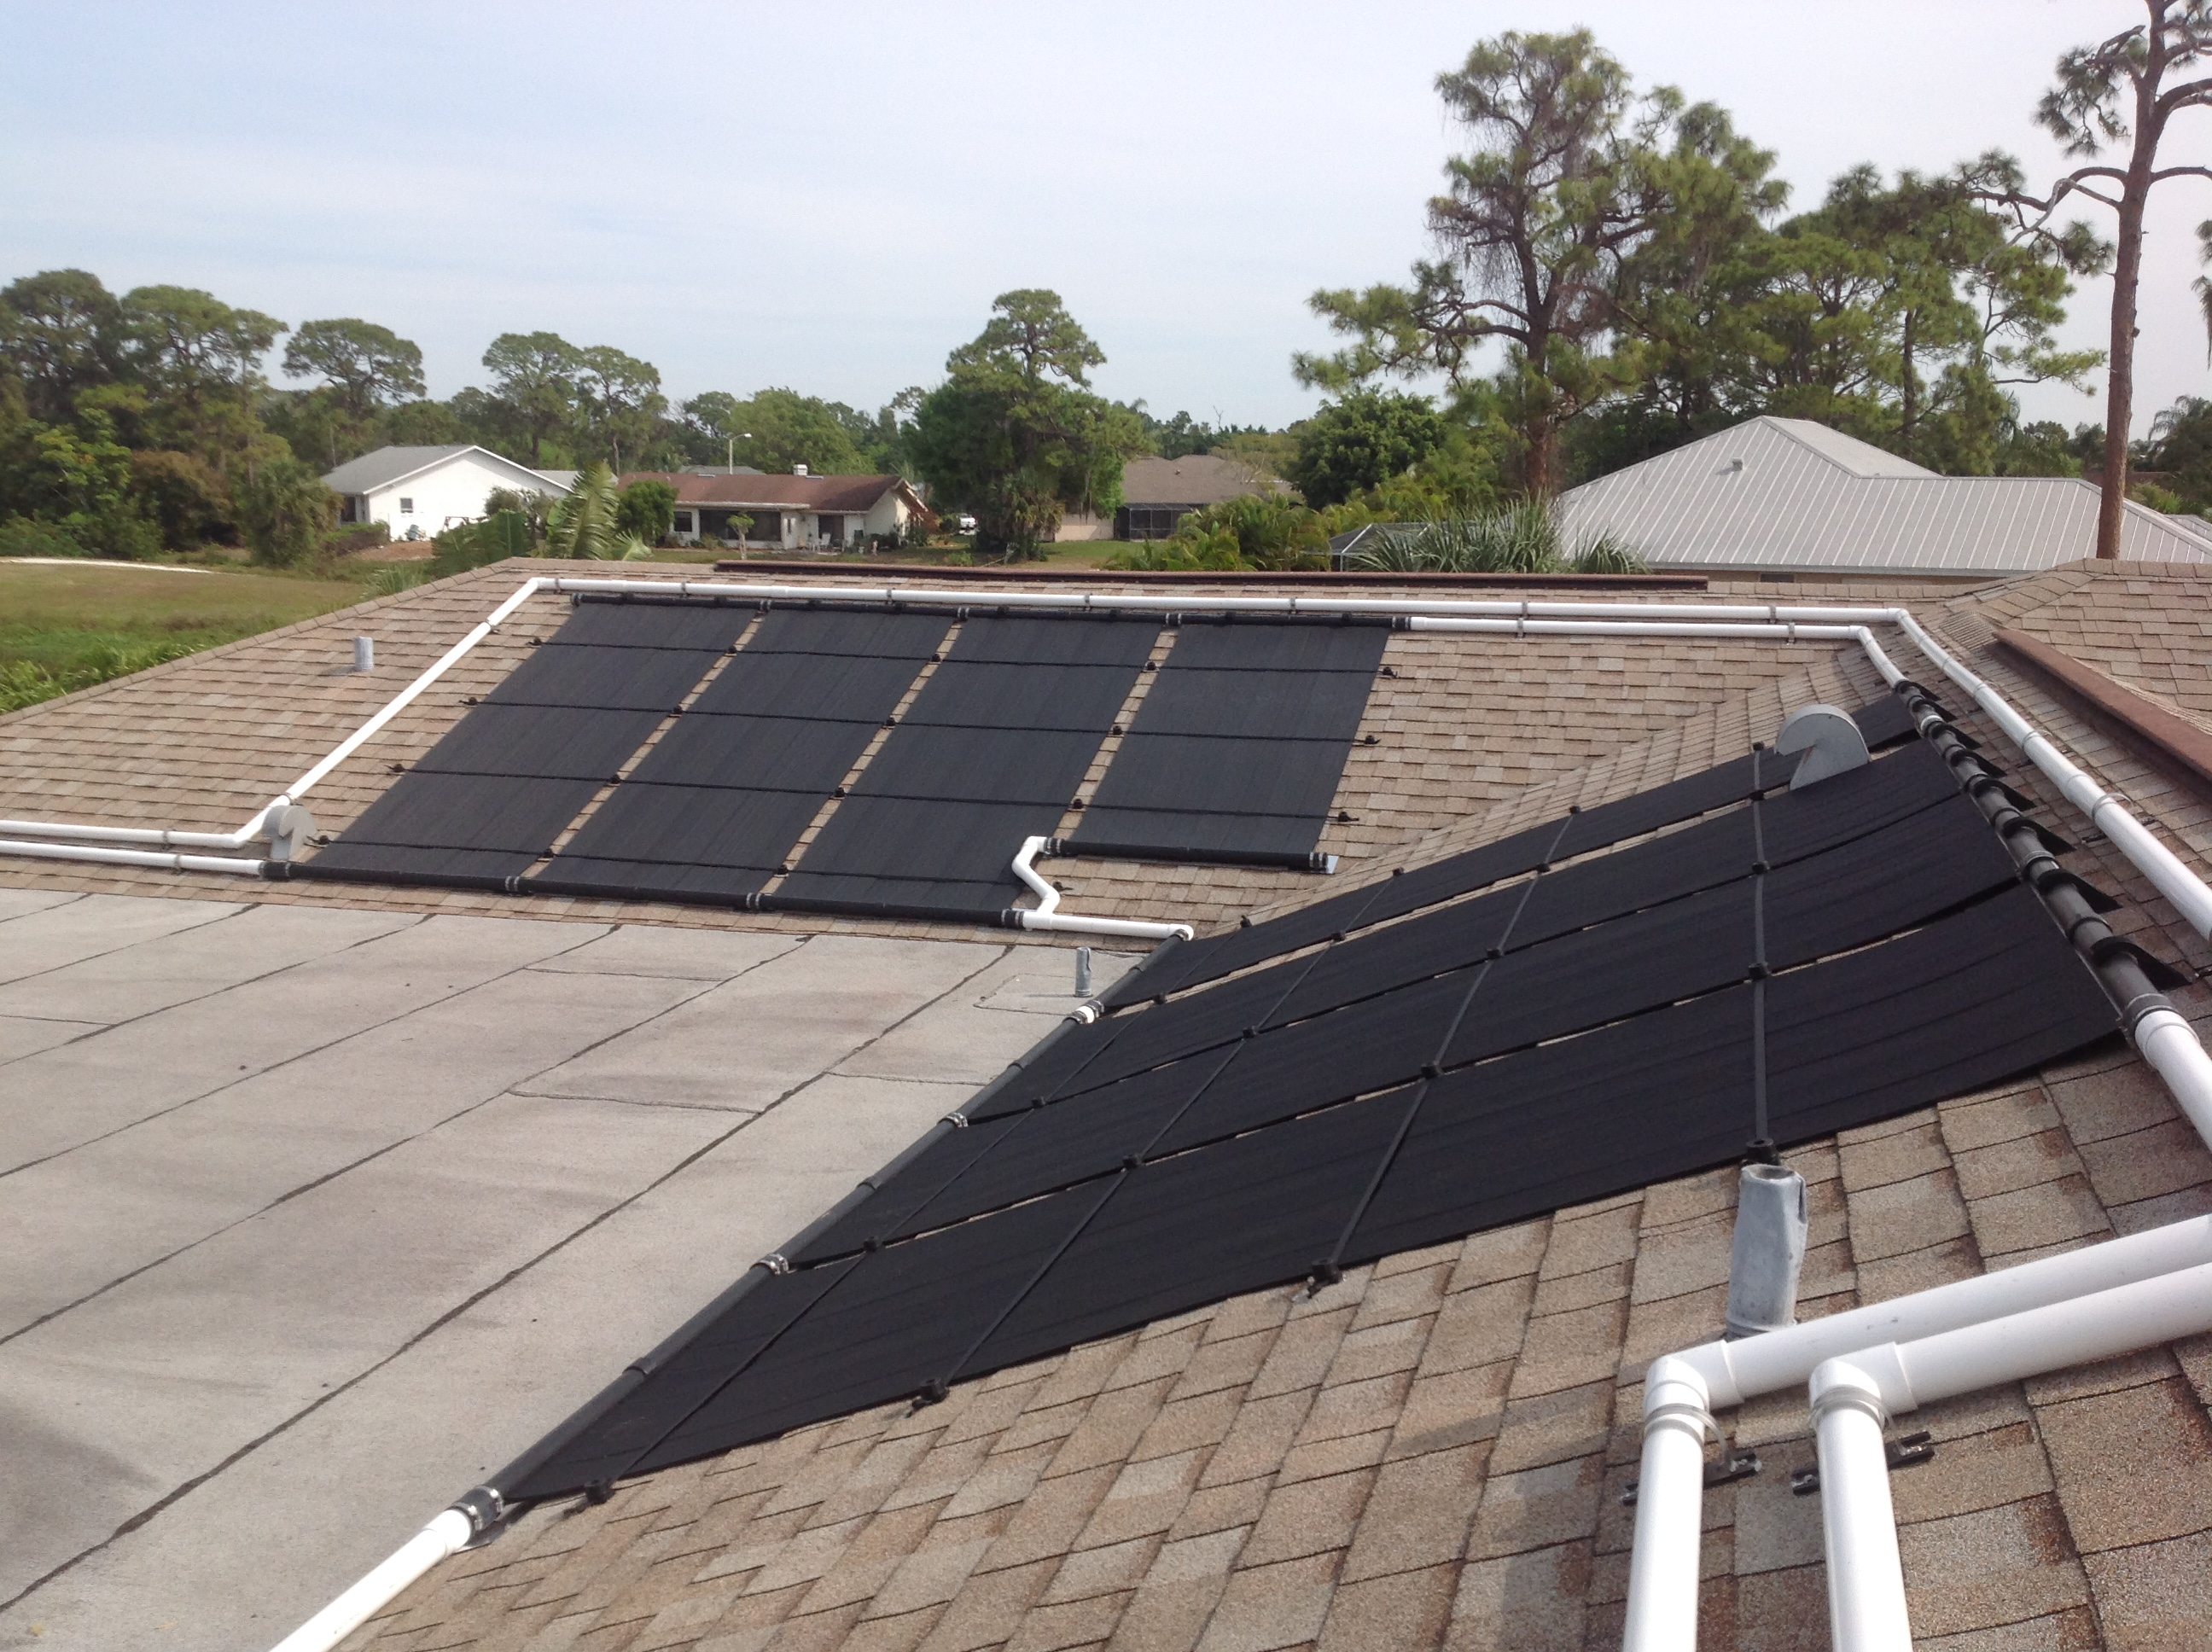 Solar Pool Heating With Roof Obstructions And Vents